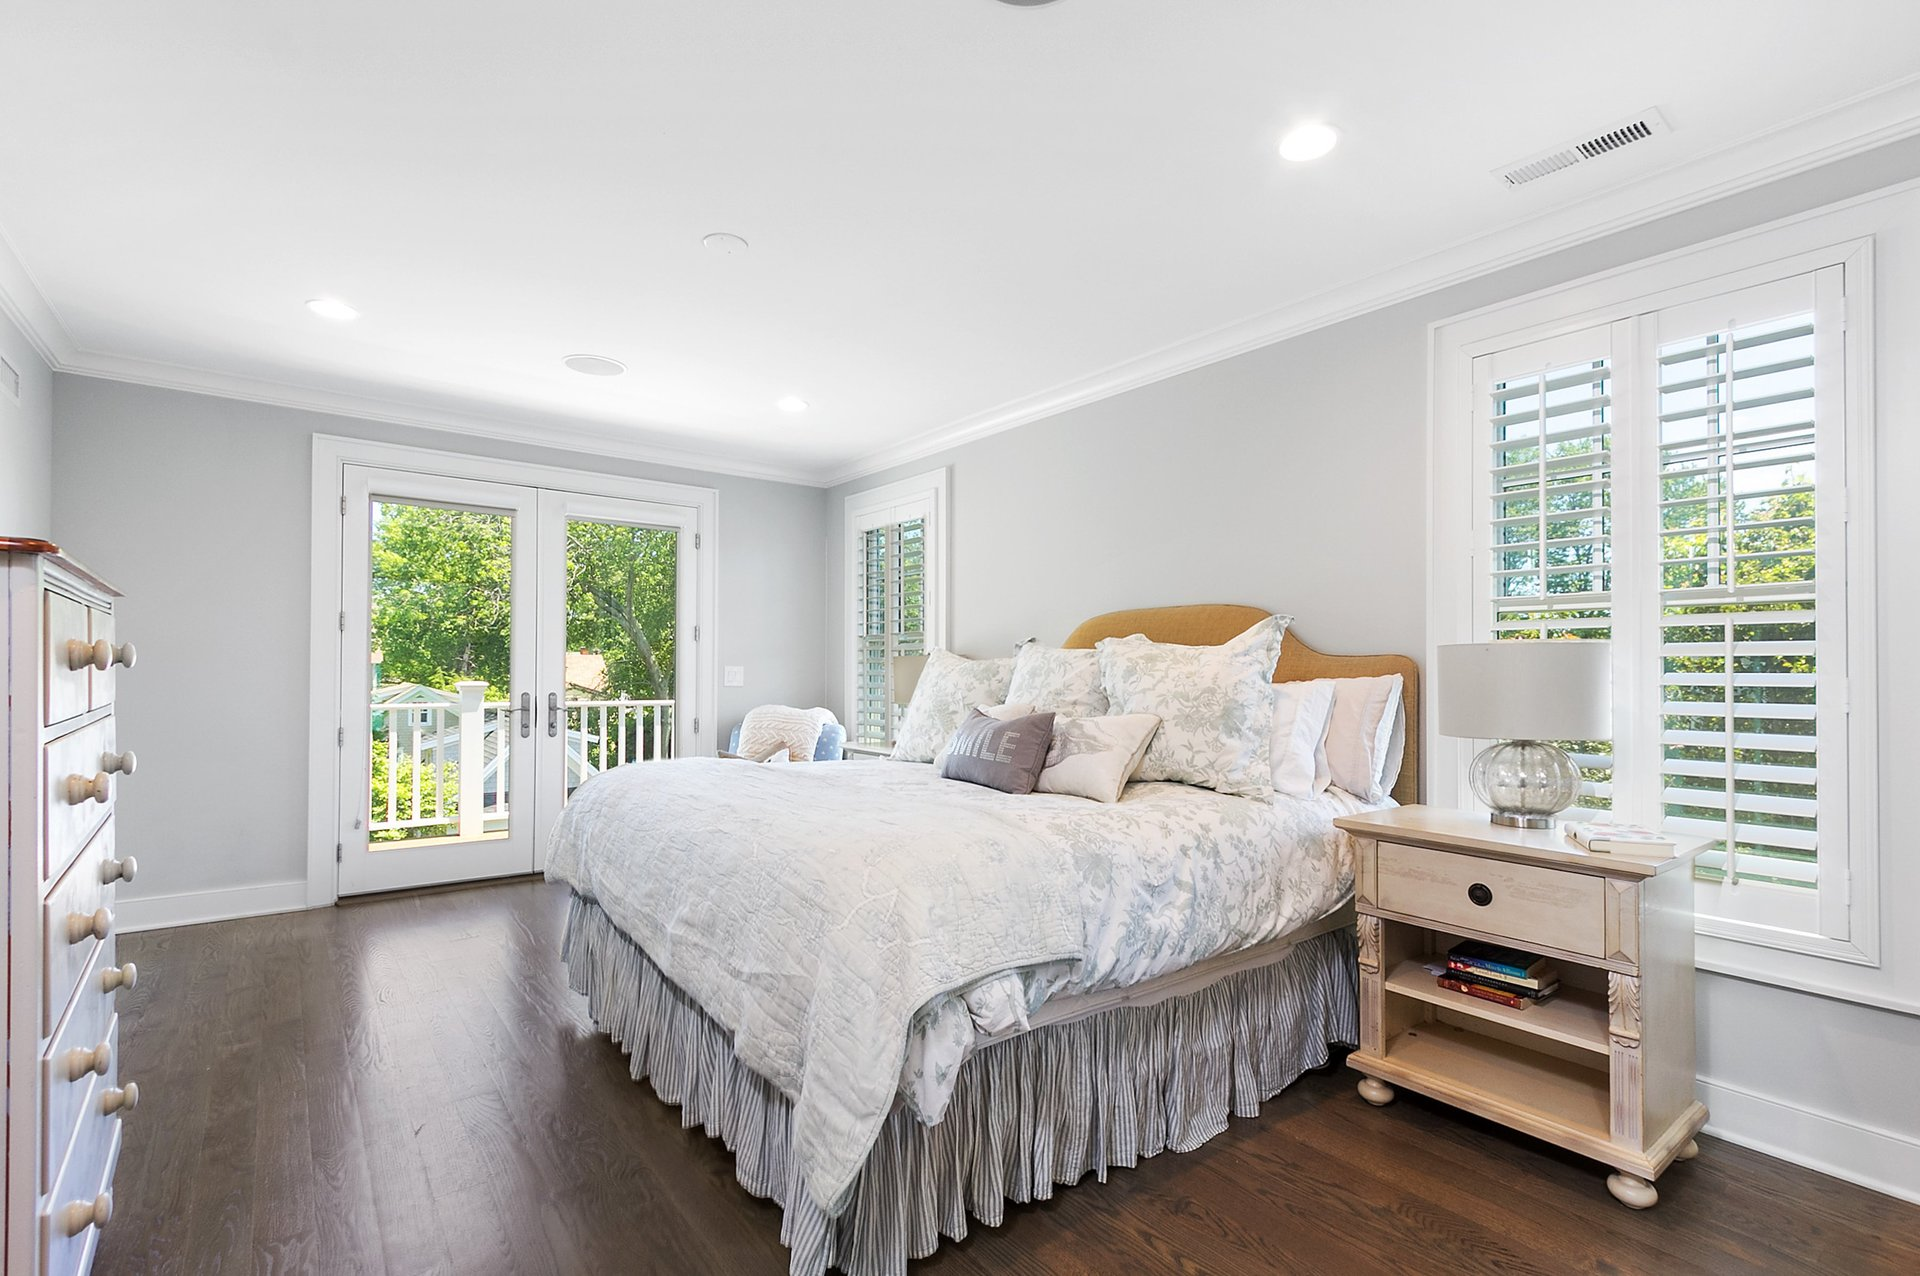 Home Renovations | Darien, CT